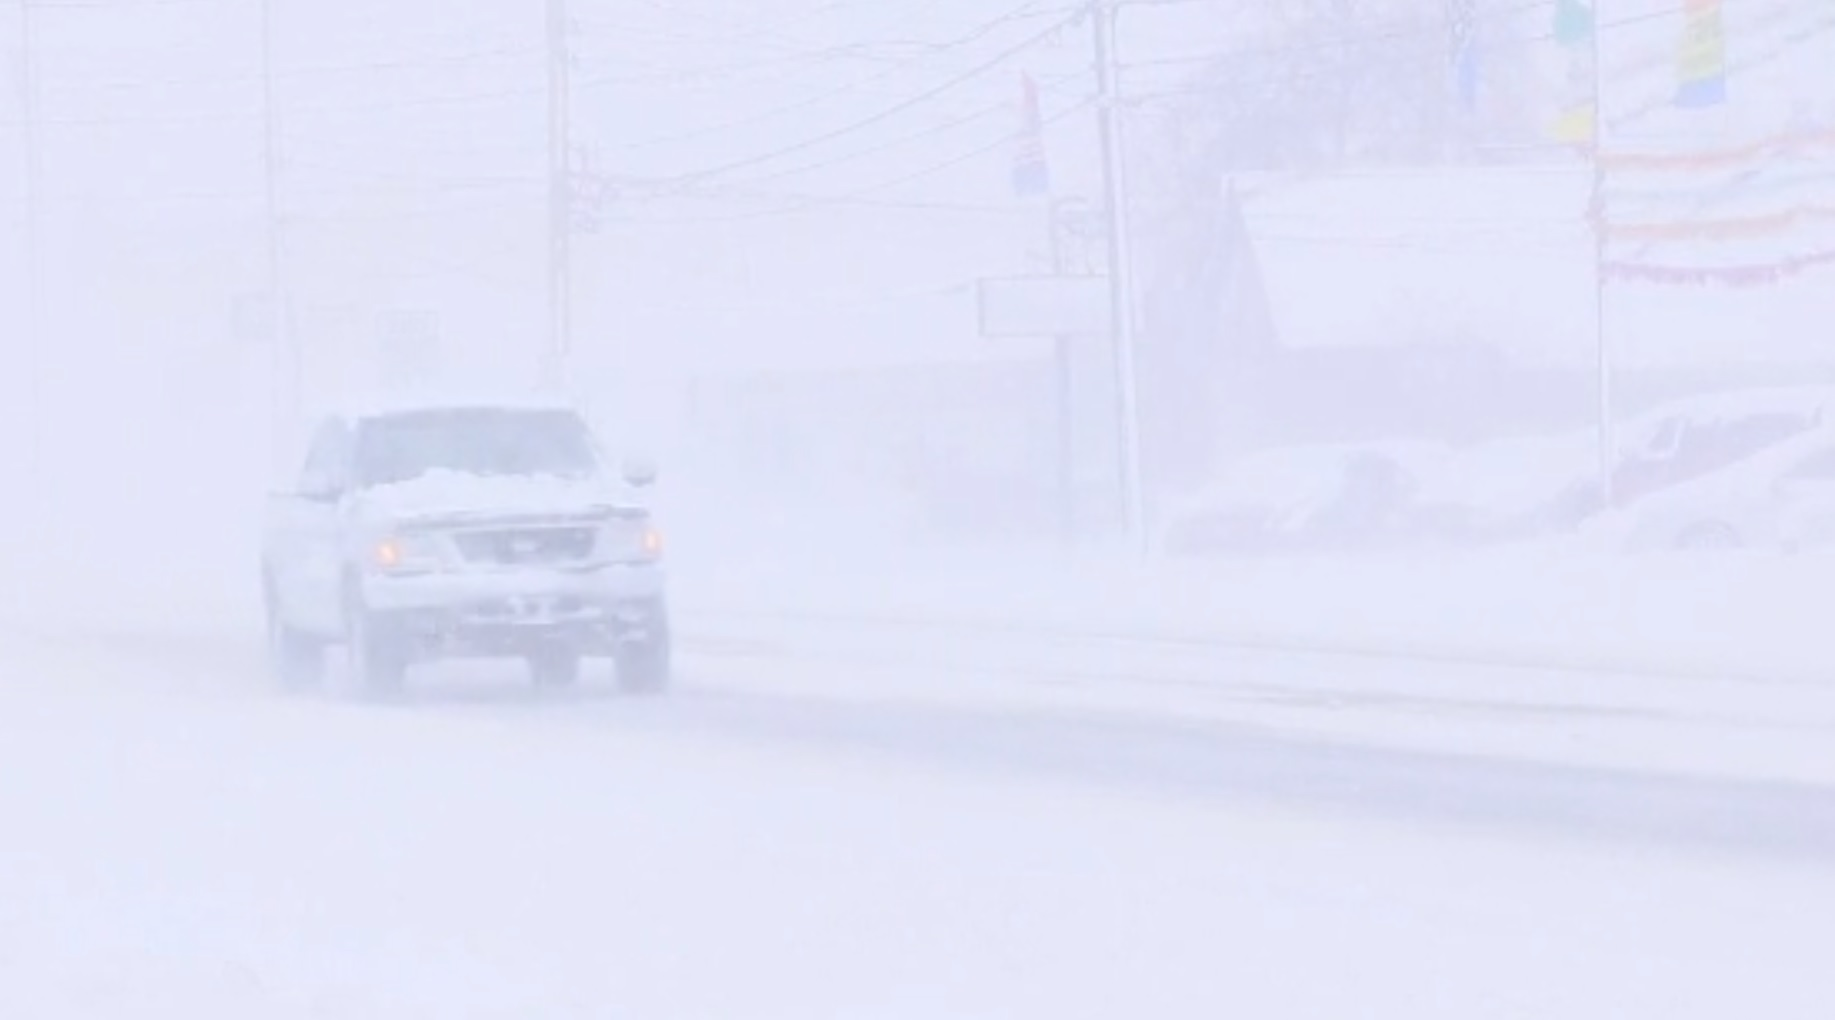 Record two-day snowfall covers Erie, Pennsylvania. (Image credit: WJET via CNN Newsource)